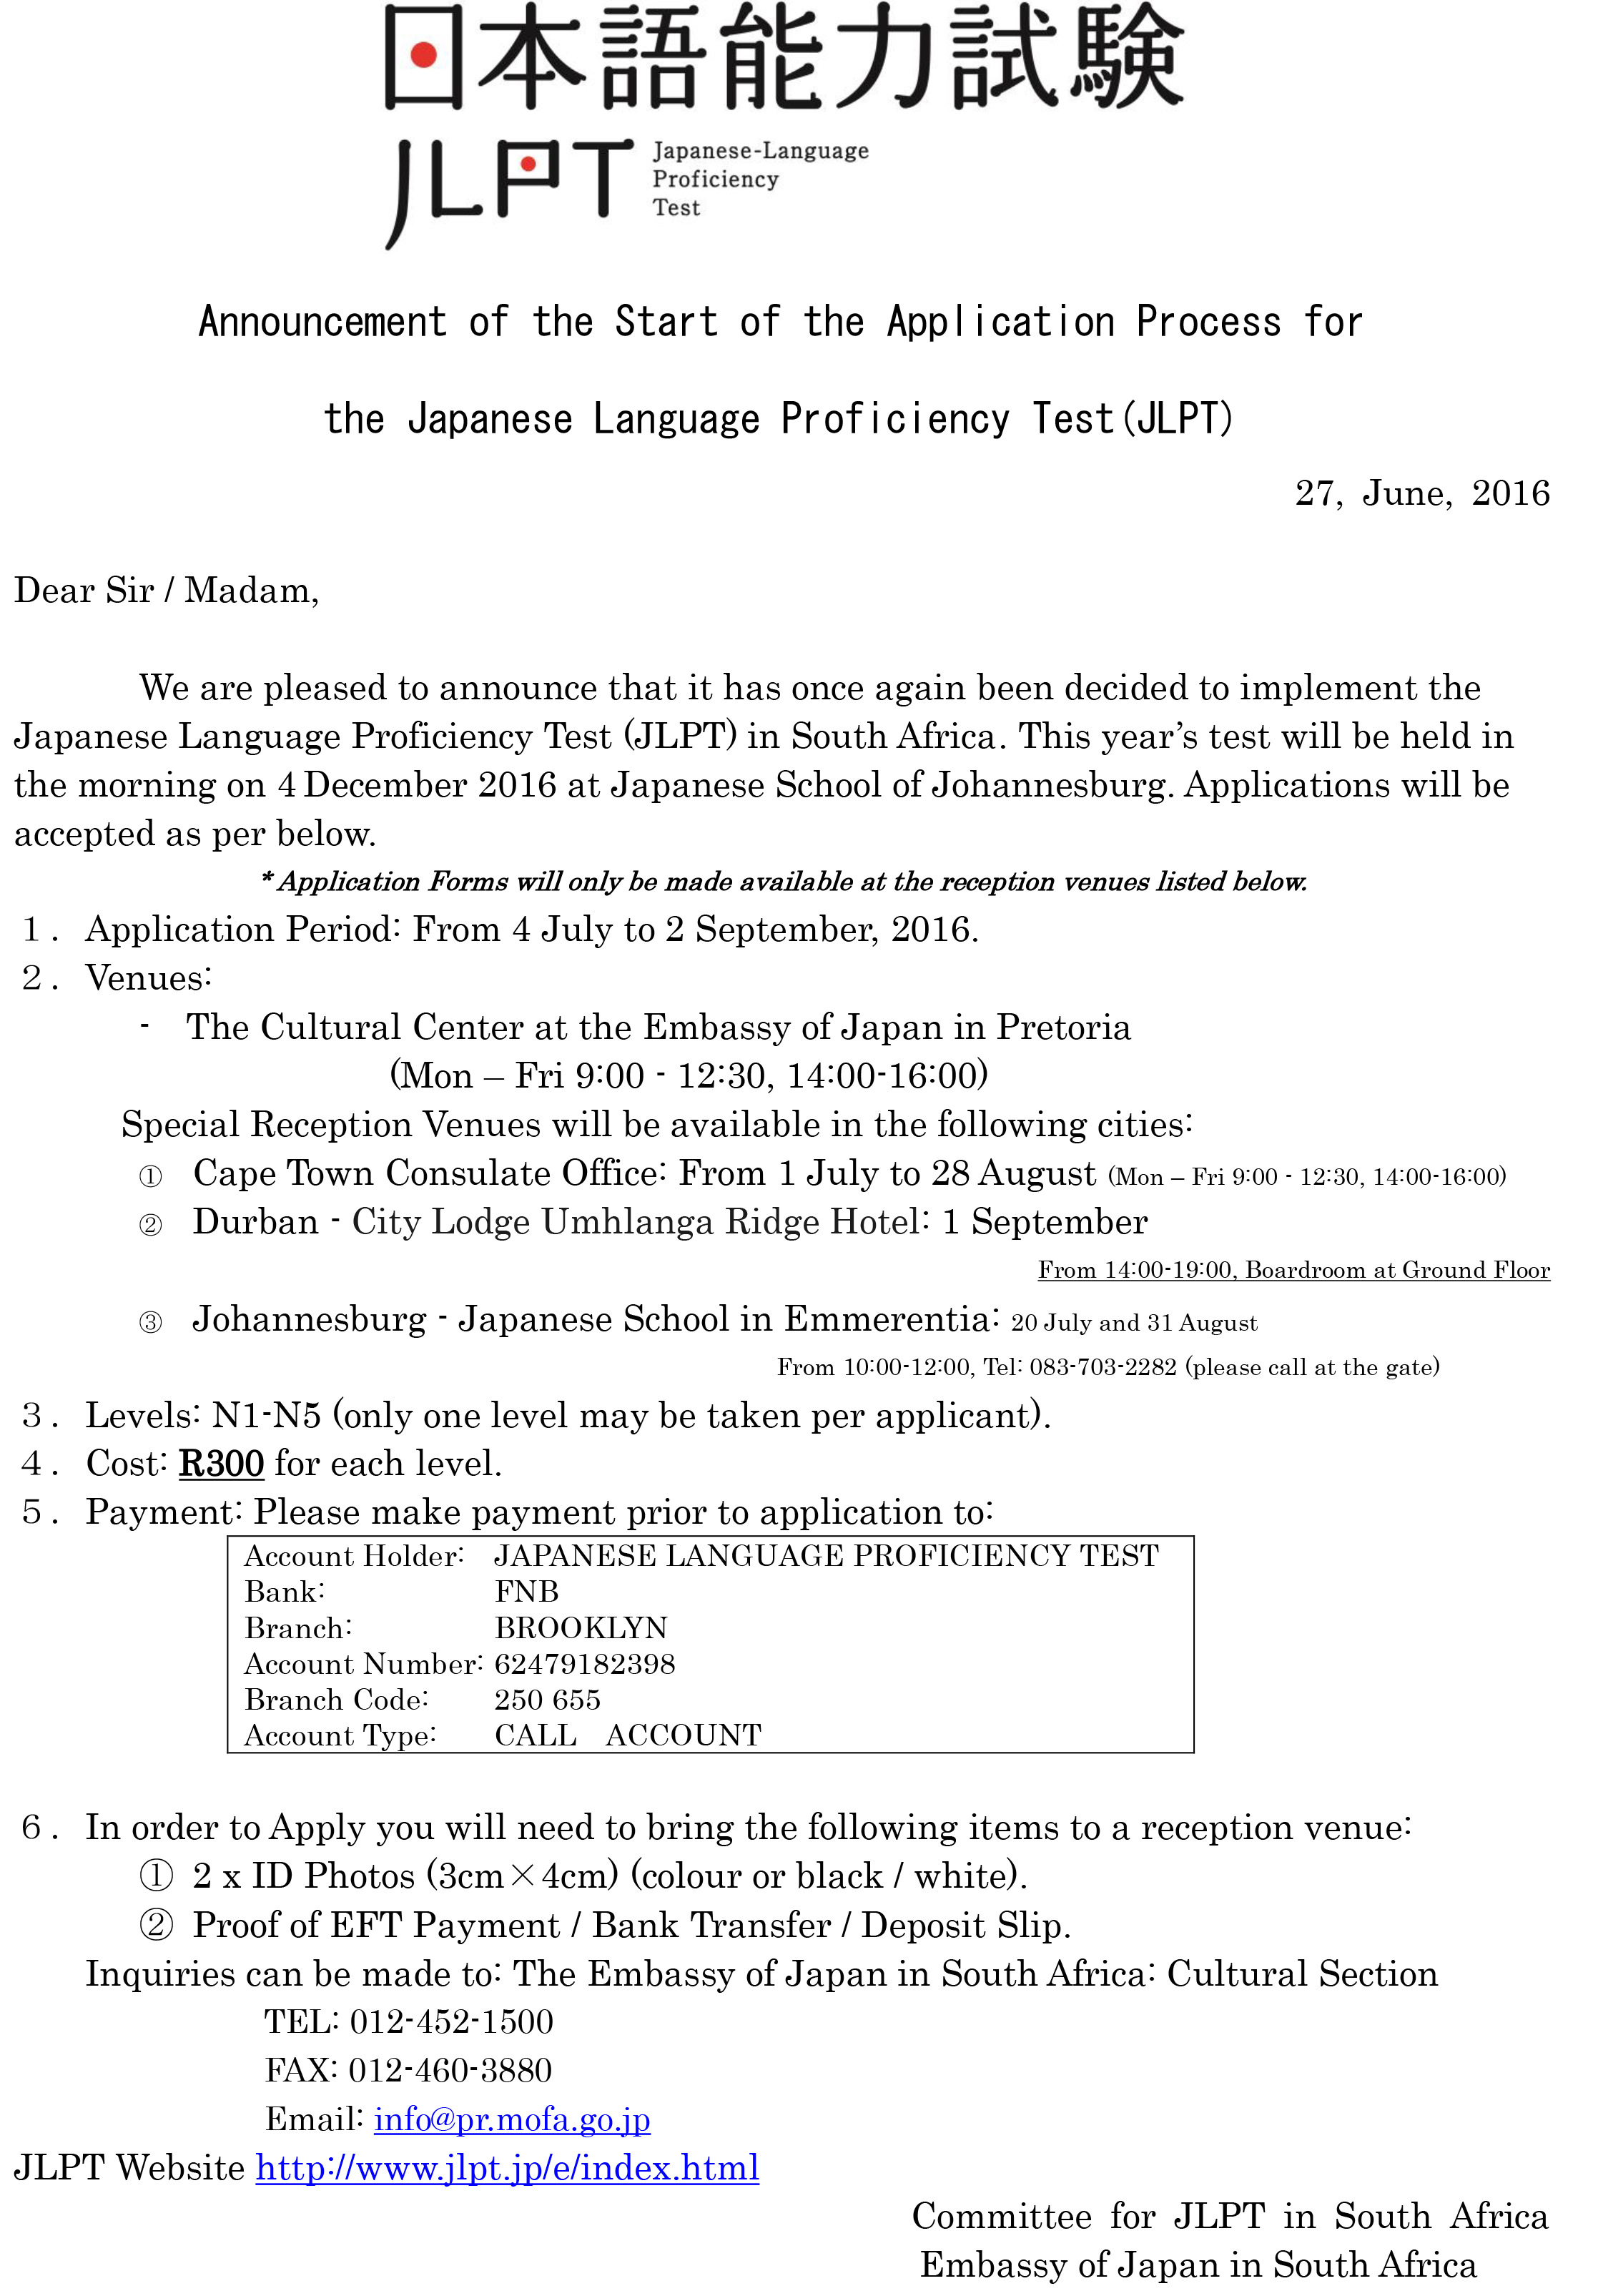 Announcement for Application of  JLPT 2016